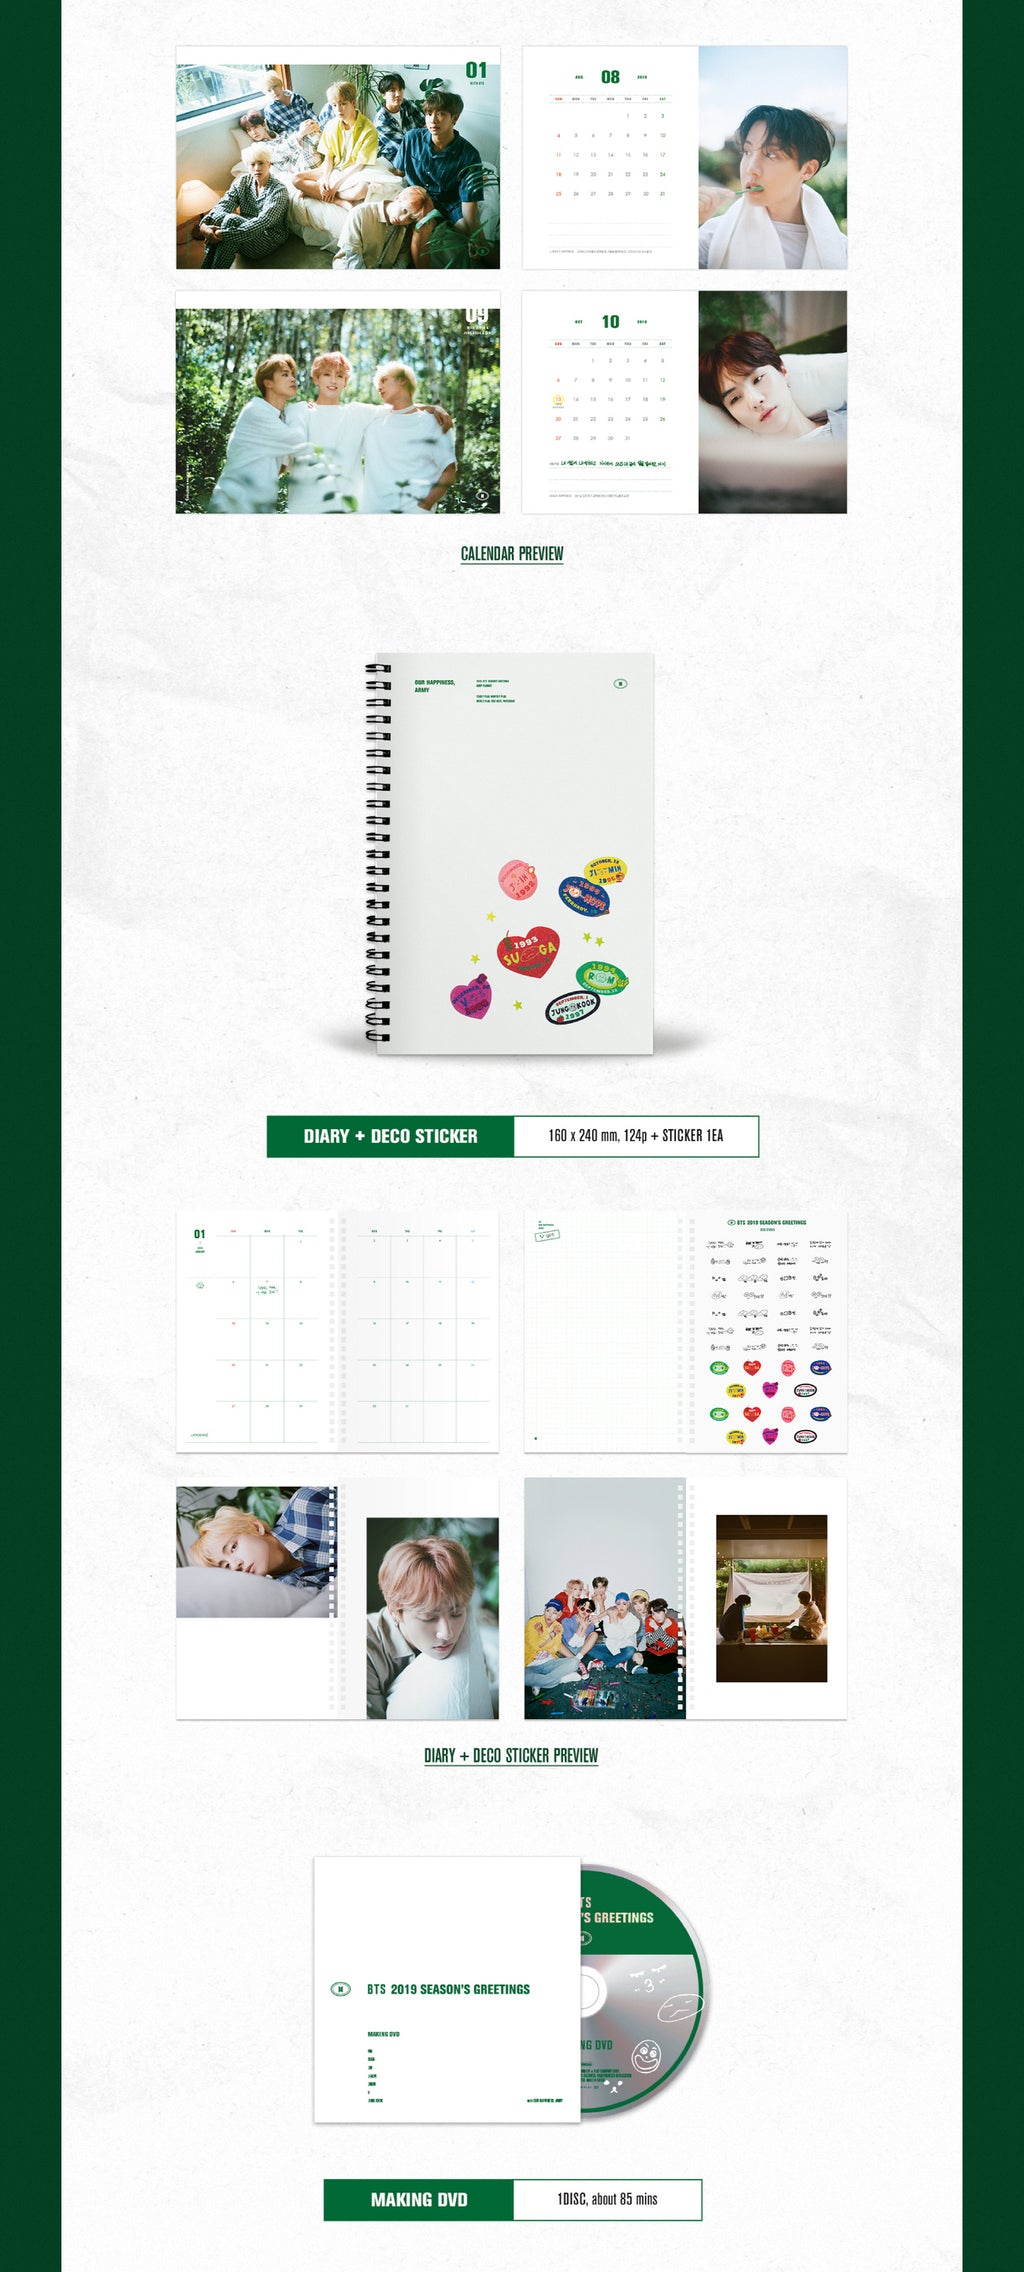 BTS 2019 Season's Greetings + Wall Calendar (Limited Edition) - Pre-Order